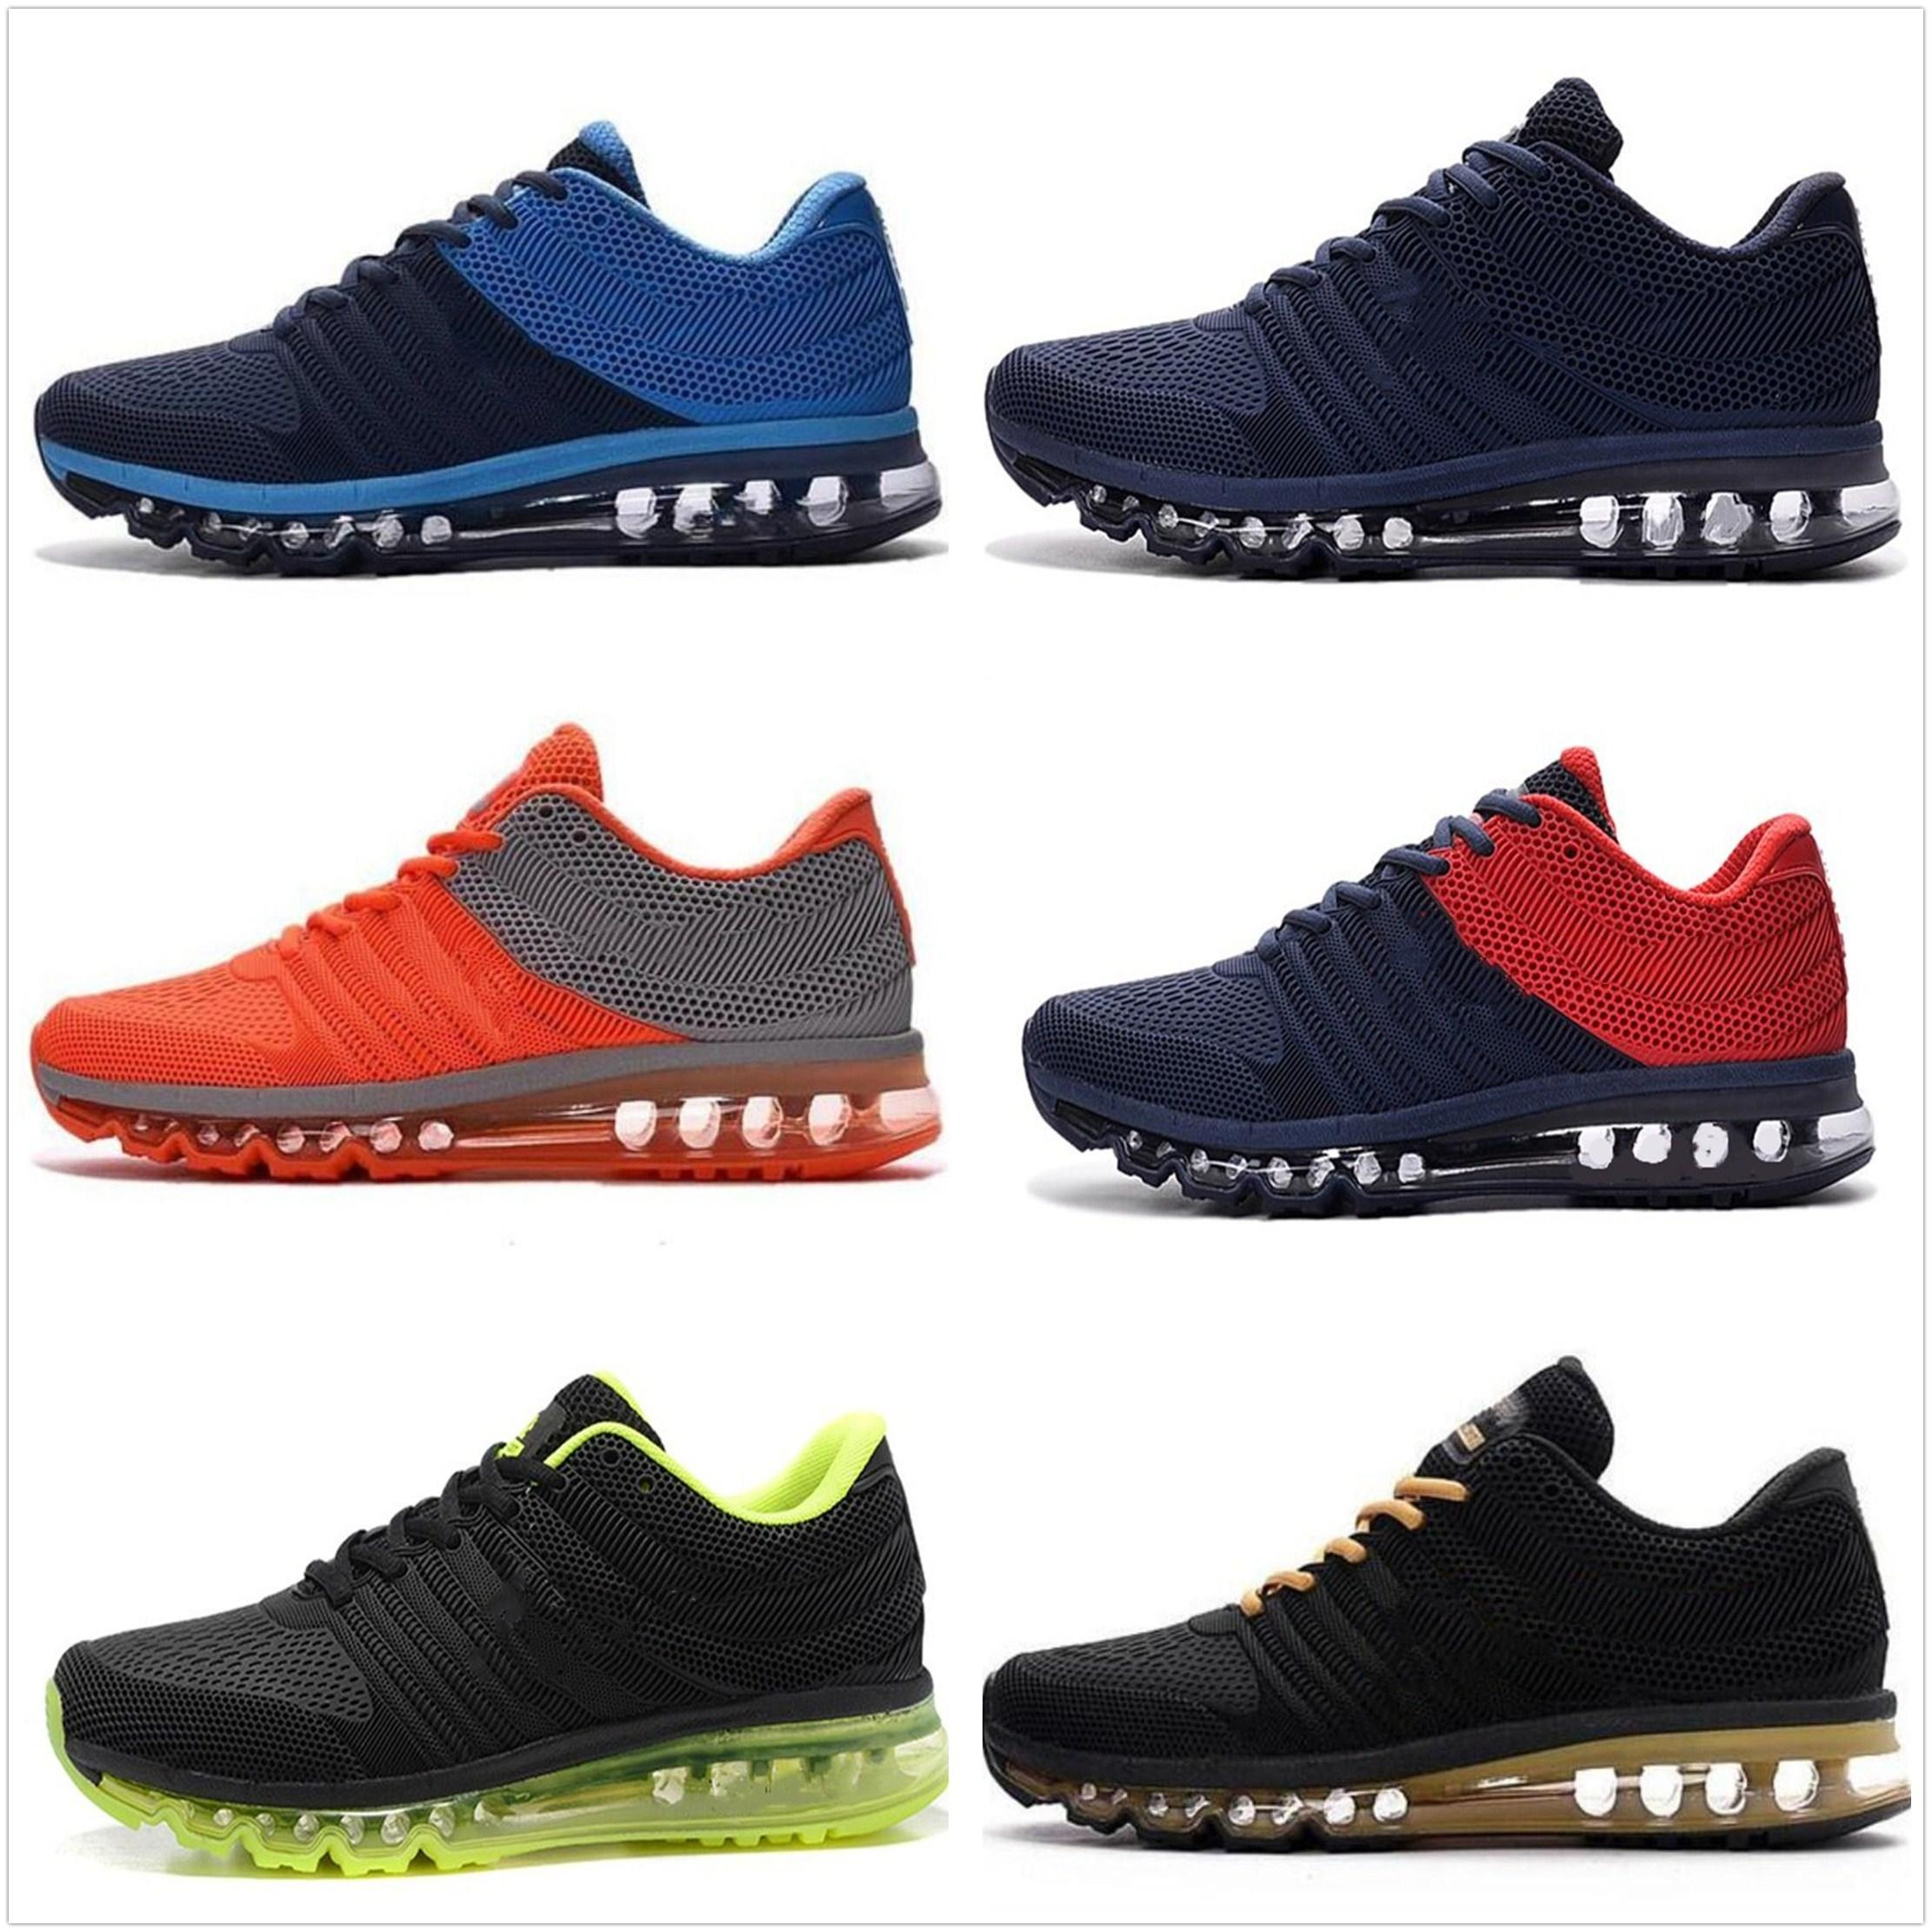 best website 8dff3 e10c7 2017 men Wholesale Boost Pirate Black Vapormaxes Vapor Maxes casual shoes  Tan Turtle Dove Men KPU casual shoes EUR 40-46